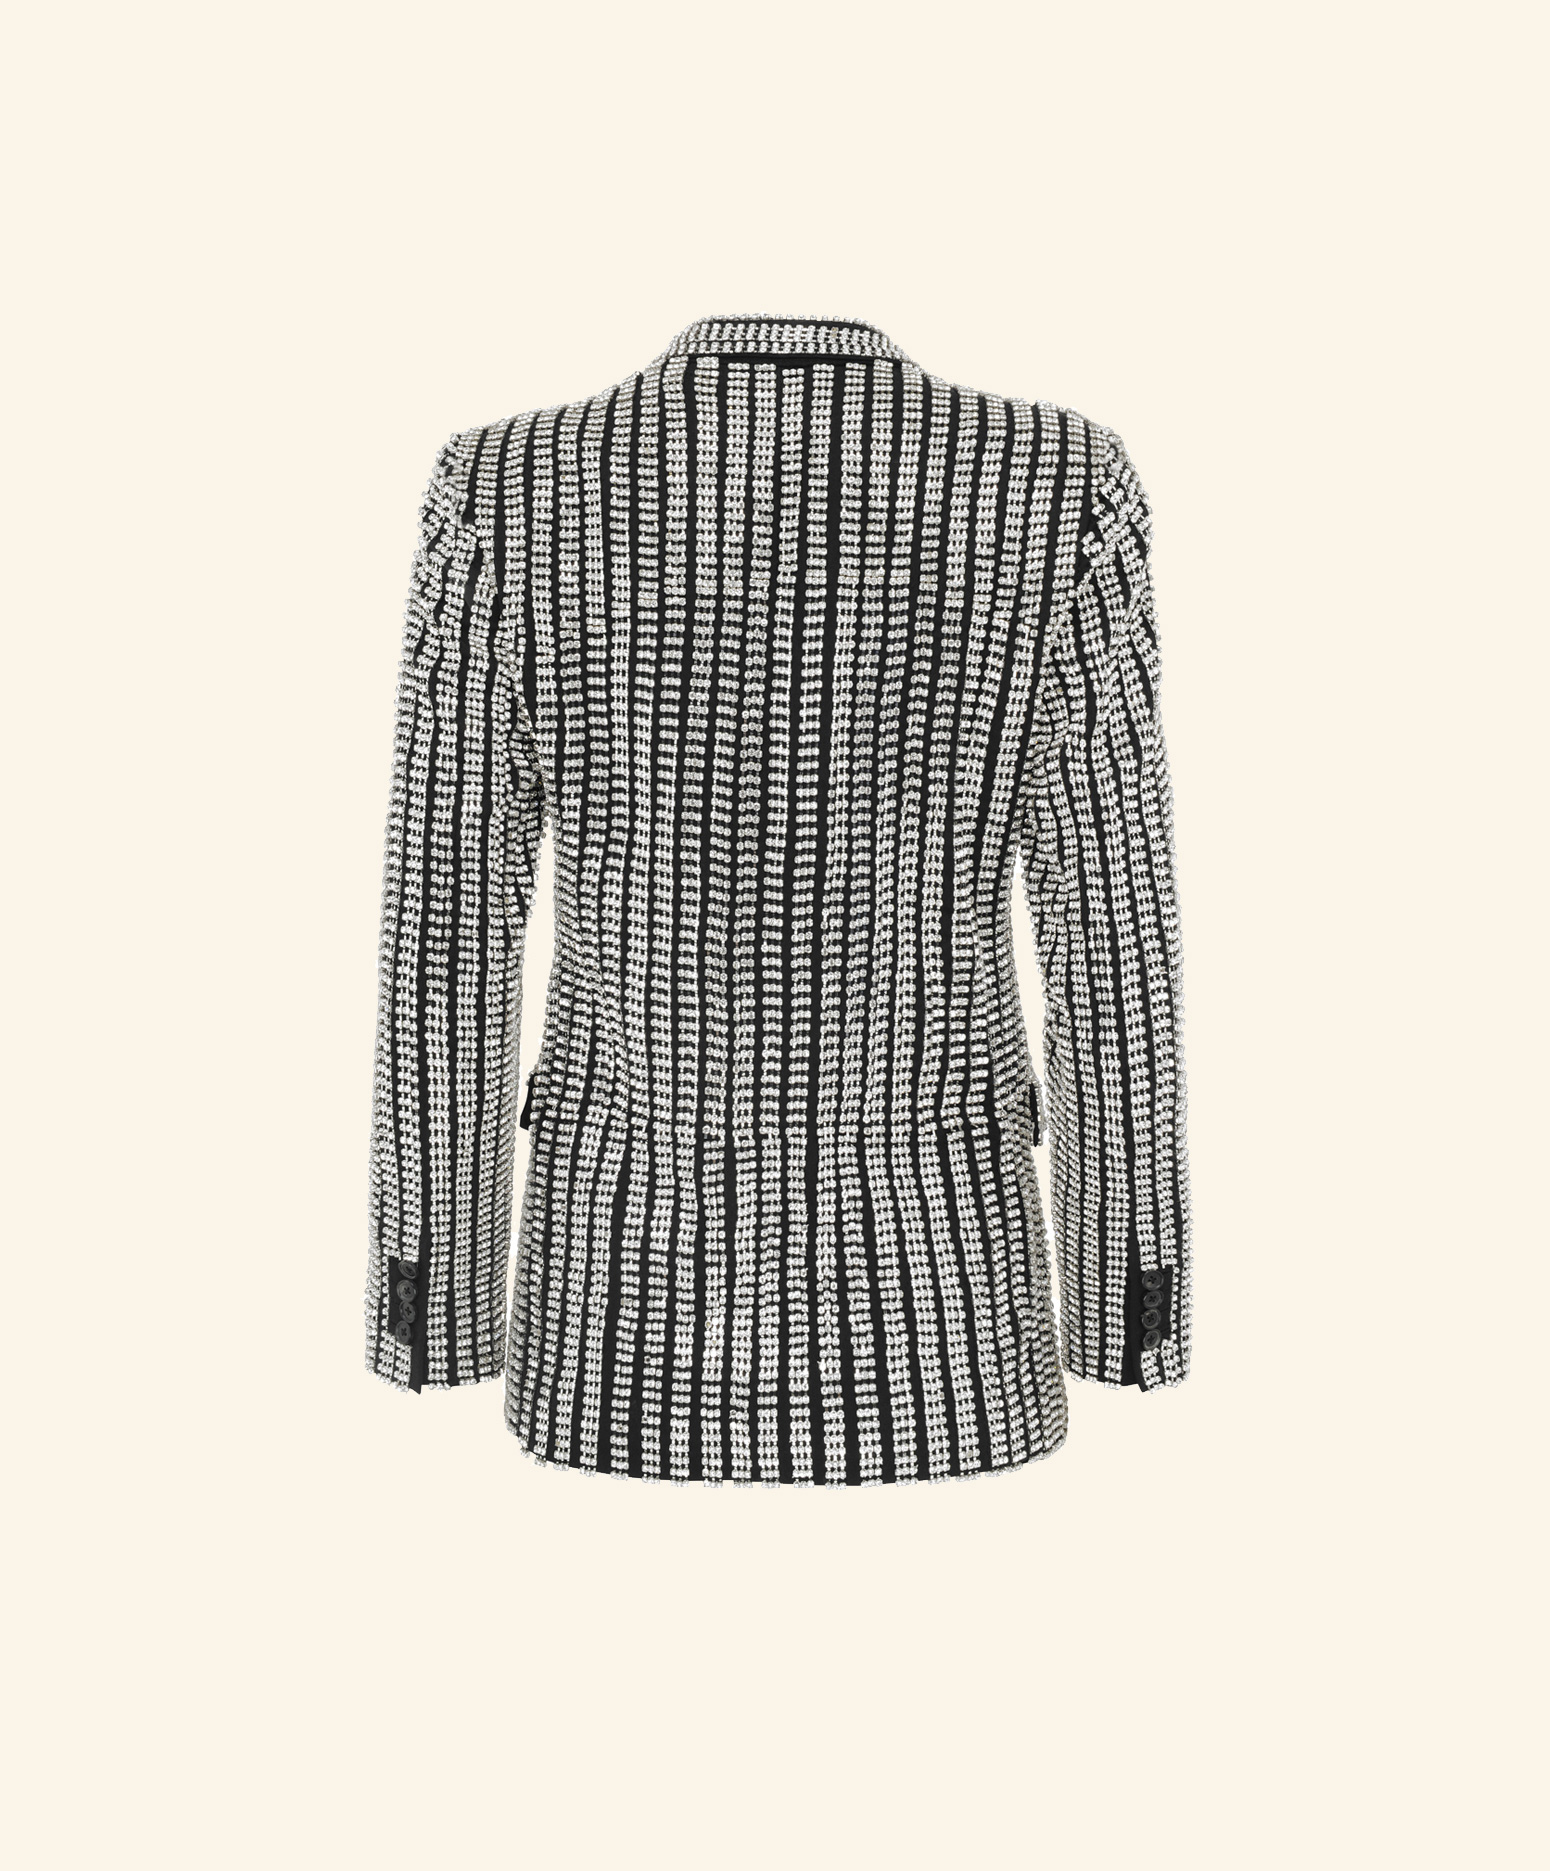 https://www.sannelondon.com/wp-content/uploads/2019/06/tri-crystal-striped-jacket-bk.jpg